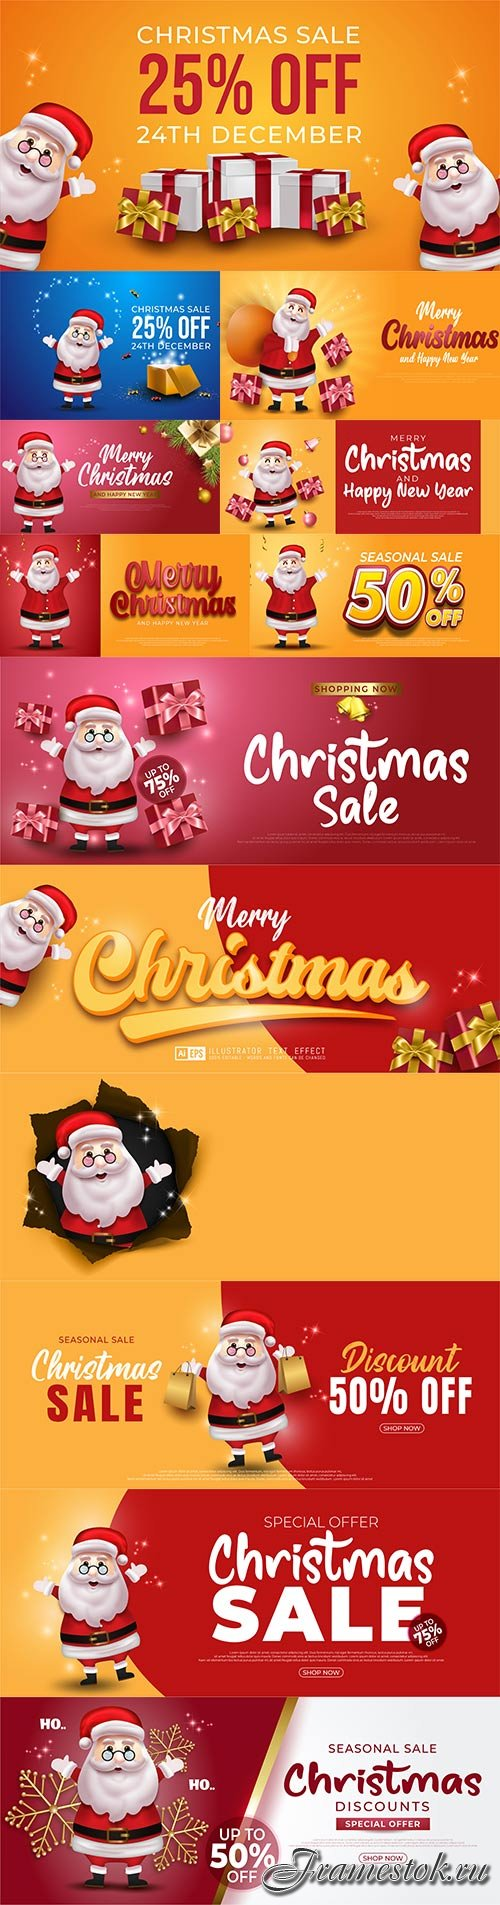 Merry christmas and happy new year banner with santa claus premium vector